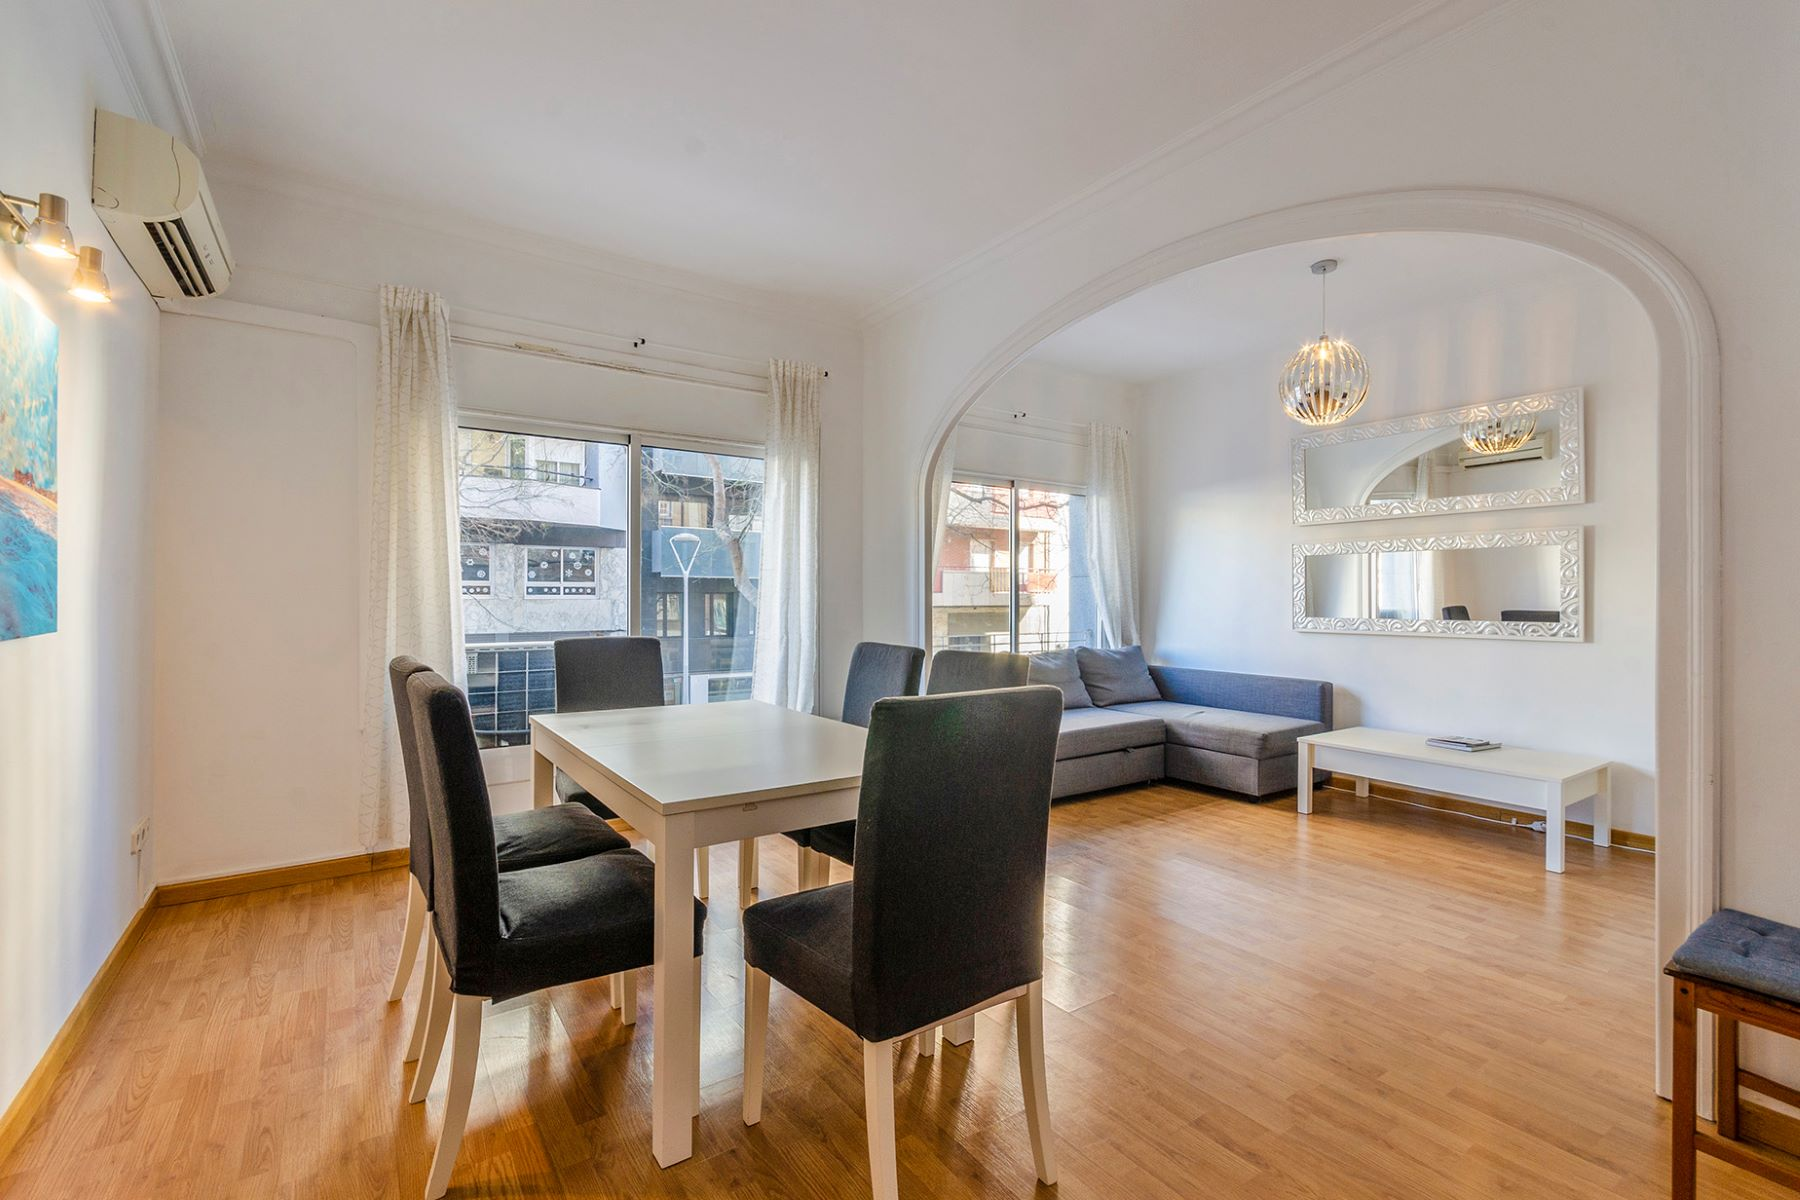 Apartment for Sale at Apartment near Sagrada Familia with 2 parking places Barcelona City, Barcelona 08007 Spain